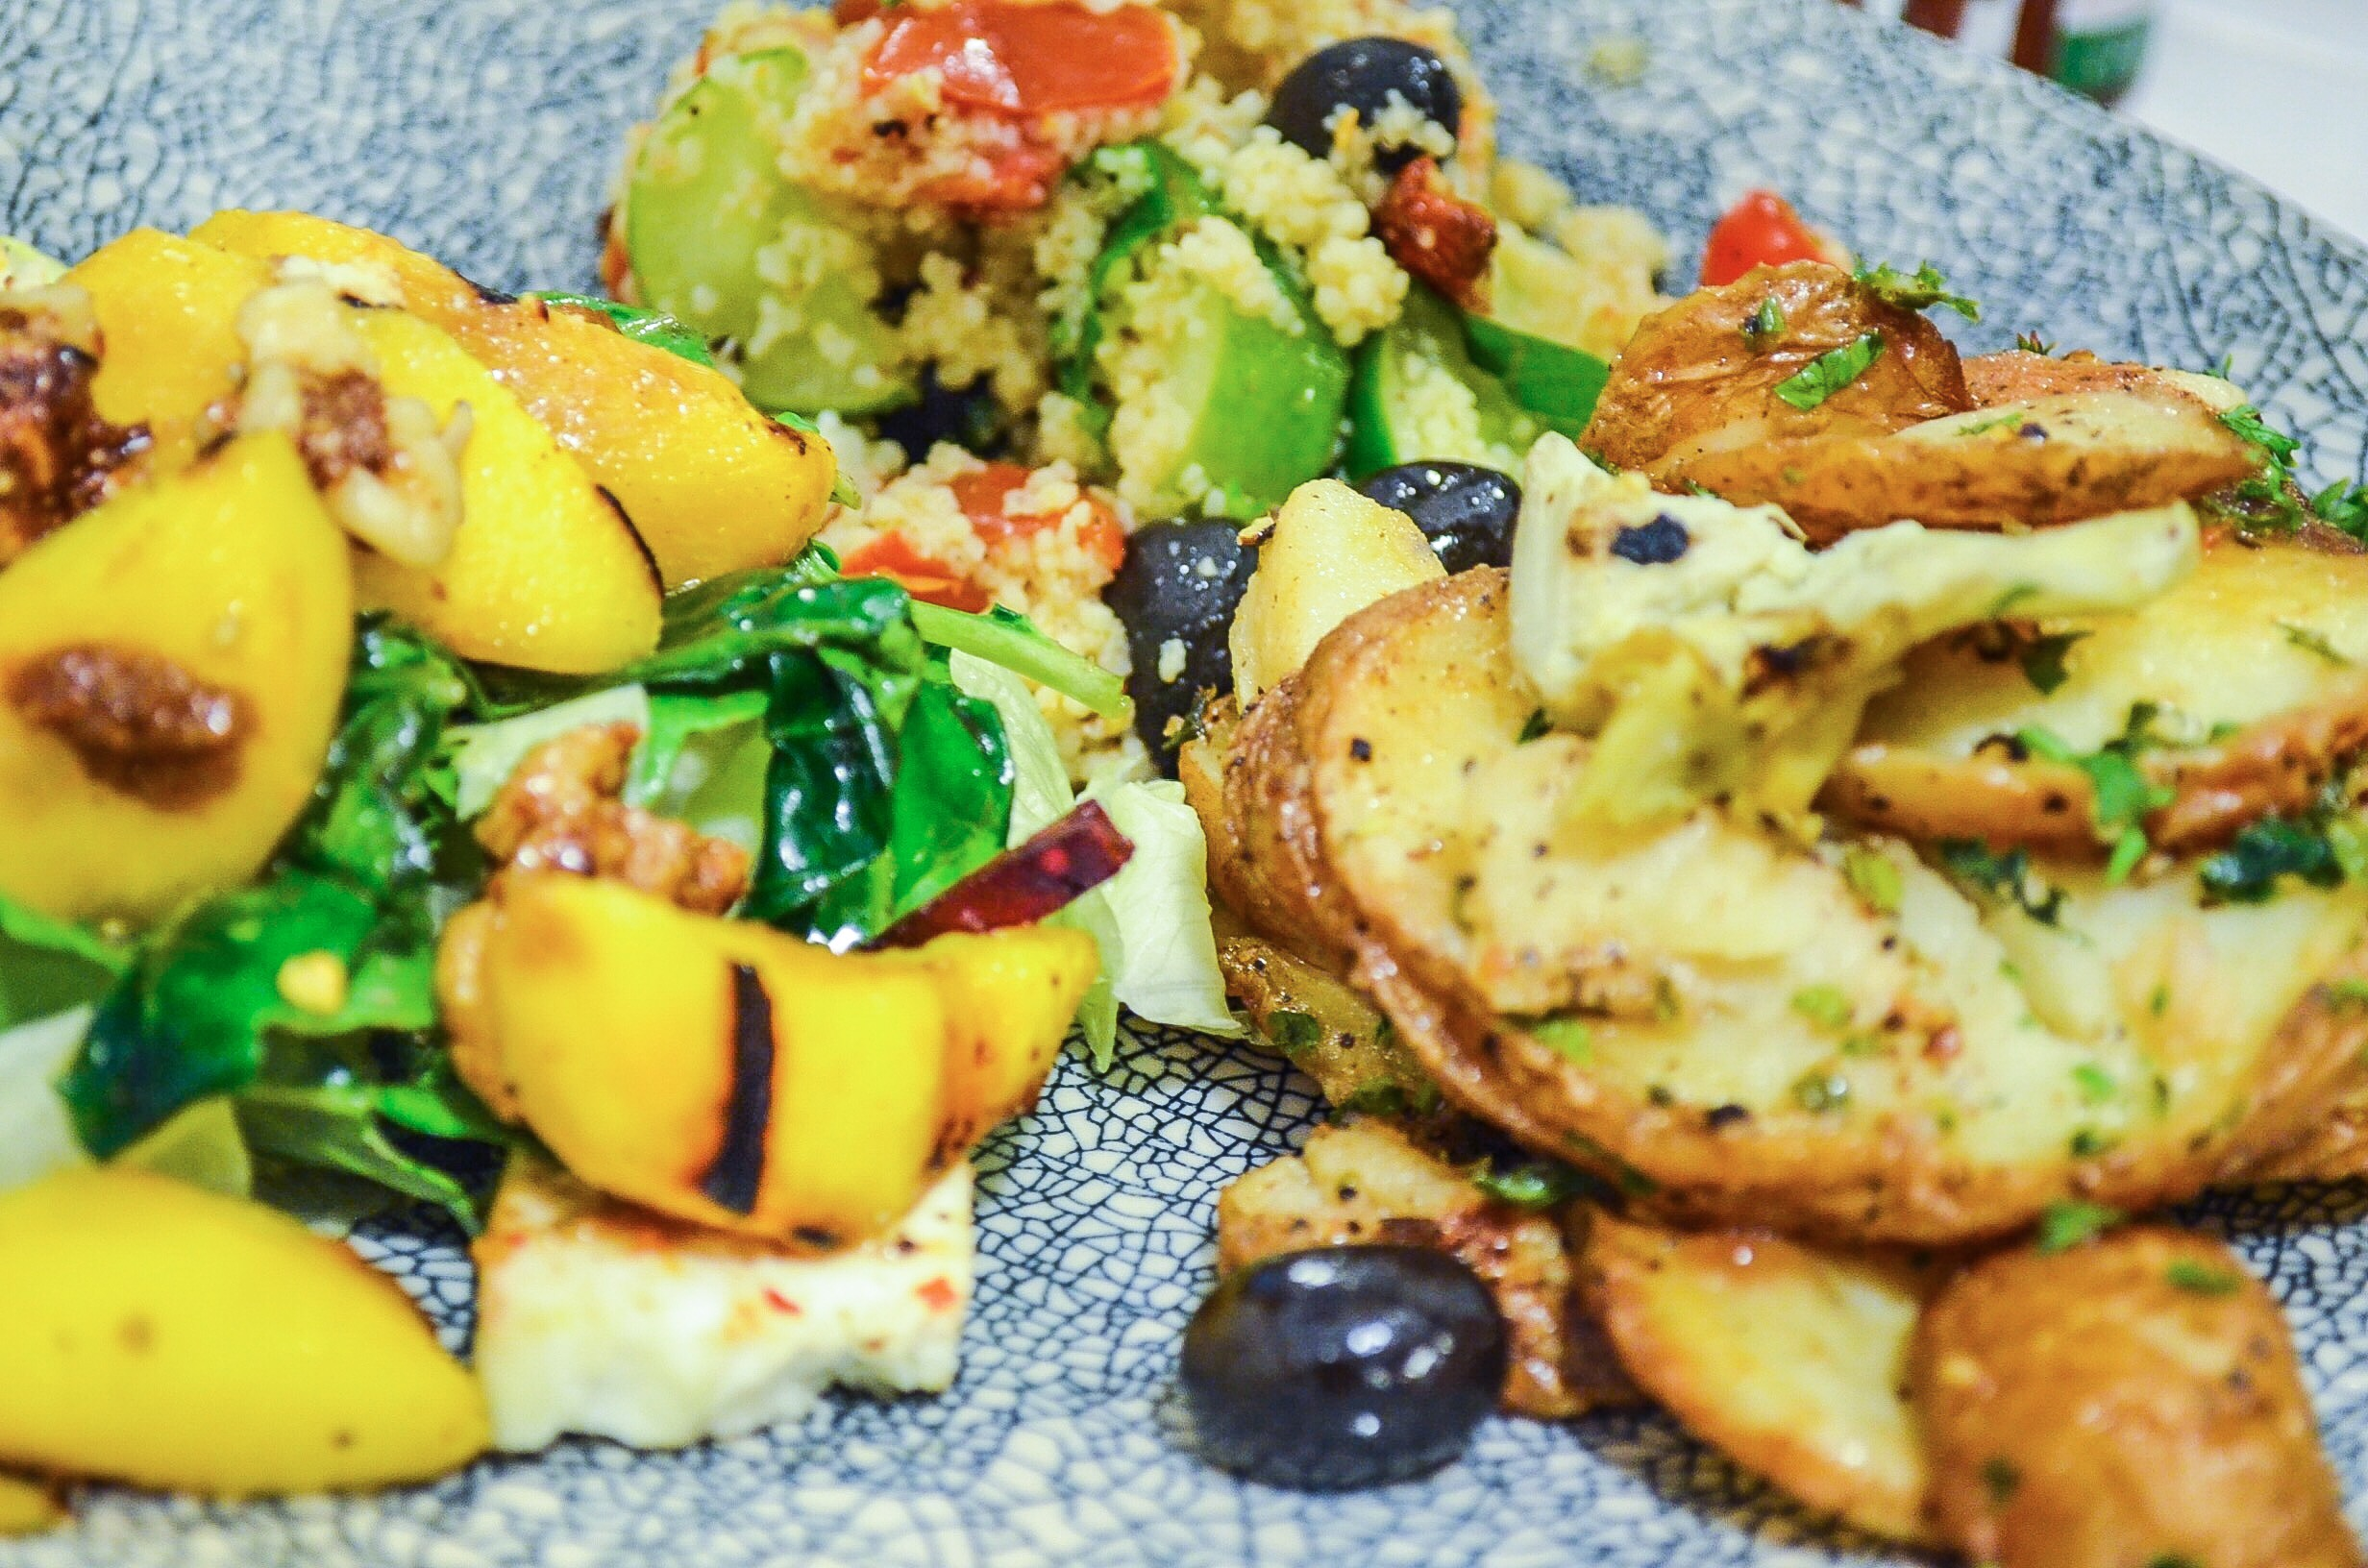 Pretty salads on pretty plates at The Pantry by The Polo Lounge (Mall One)